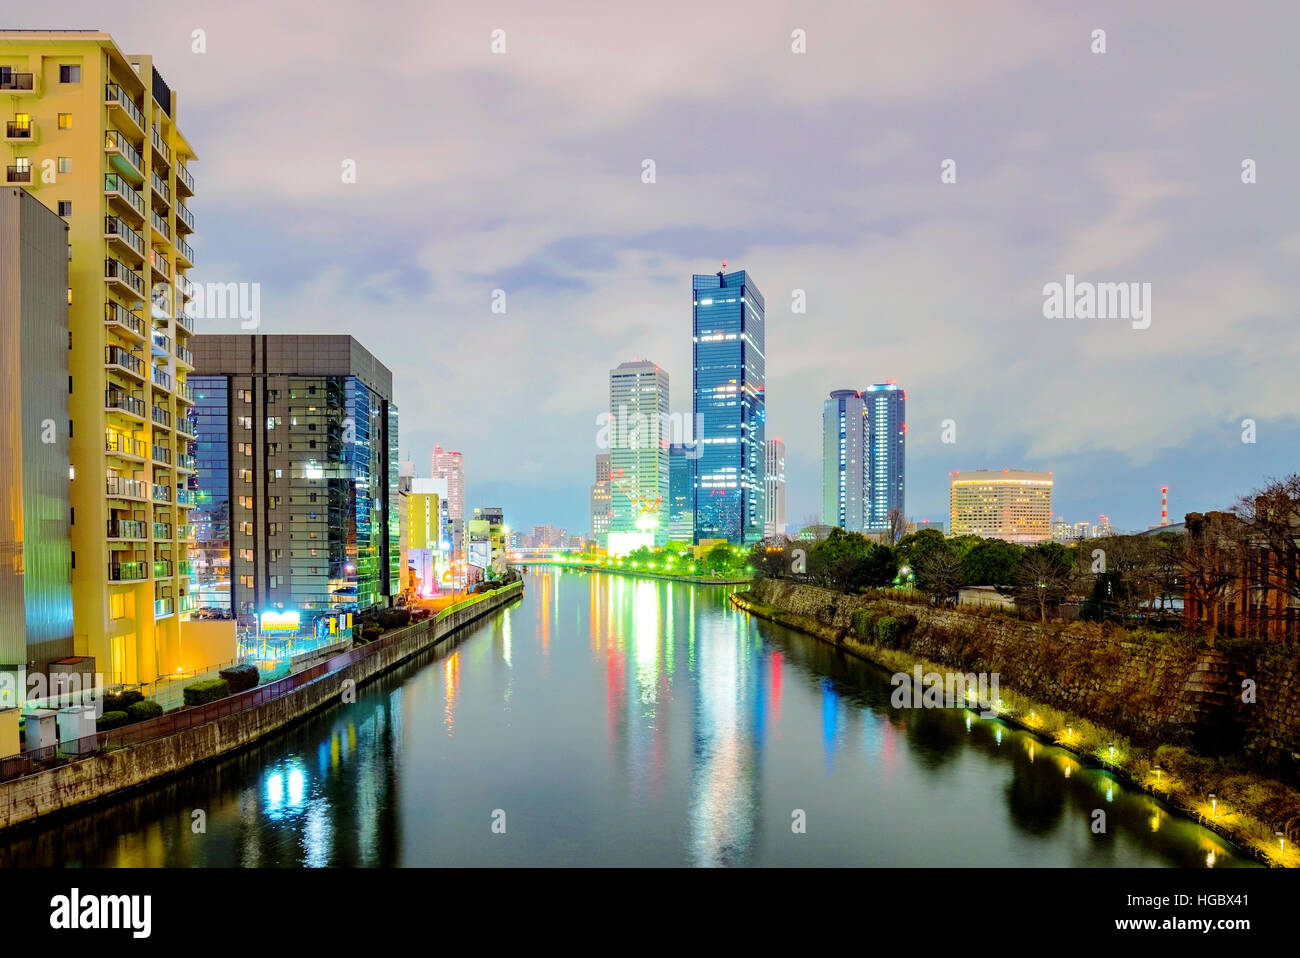 Osaka Business Park With City Buildings And River At Night